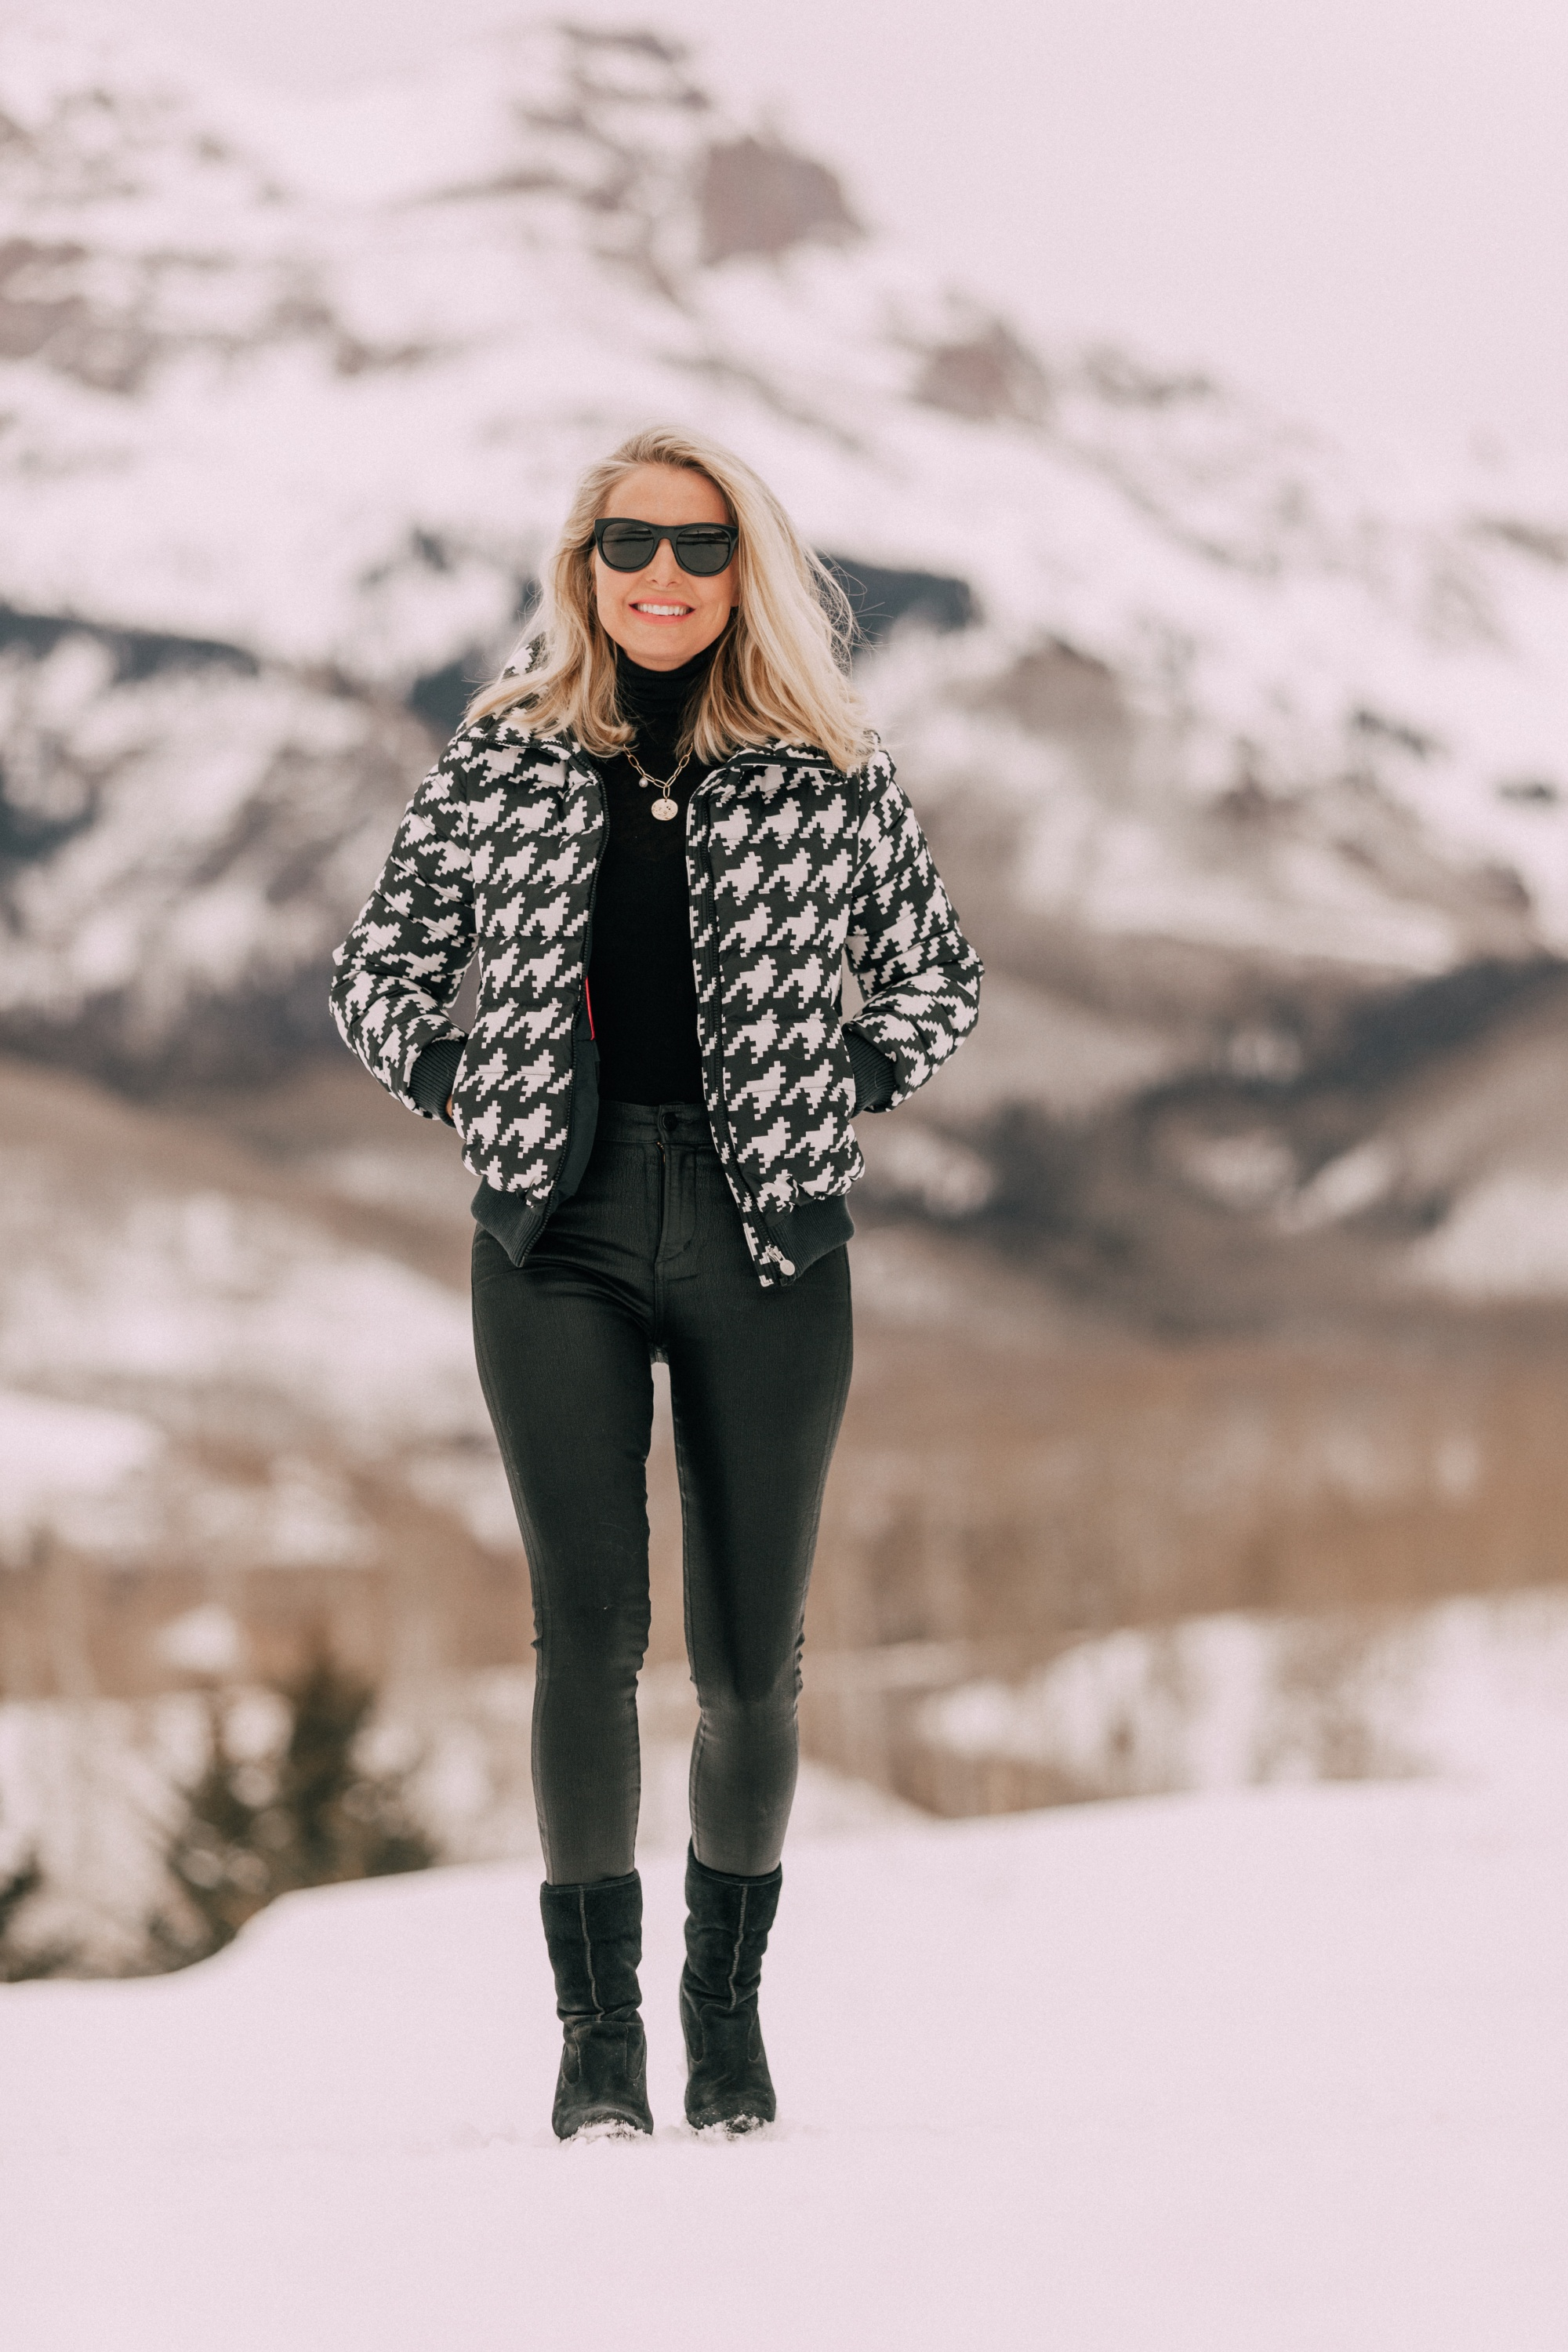 Chic Puffers, Fashion blogger Erin Busbee of BusbeeStyle.com wearing black Rocket leatherette Skinny Jeans by Citizens of Humanity with a black cashmere turtleneck sweater by Aqua, and a houndstooth puffer jacket by Perfect Moment from Shopbop in the snow in Telluride, CO